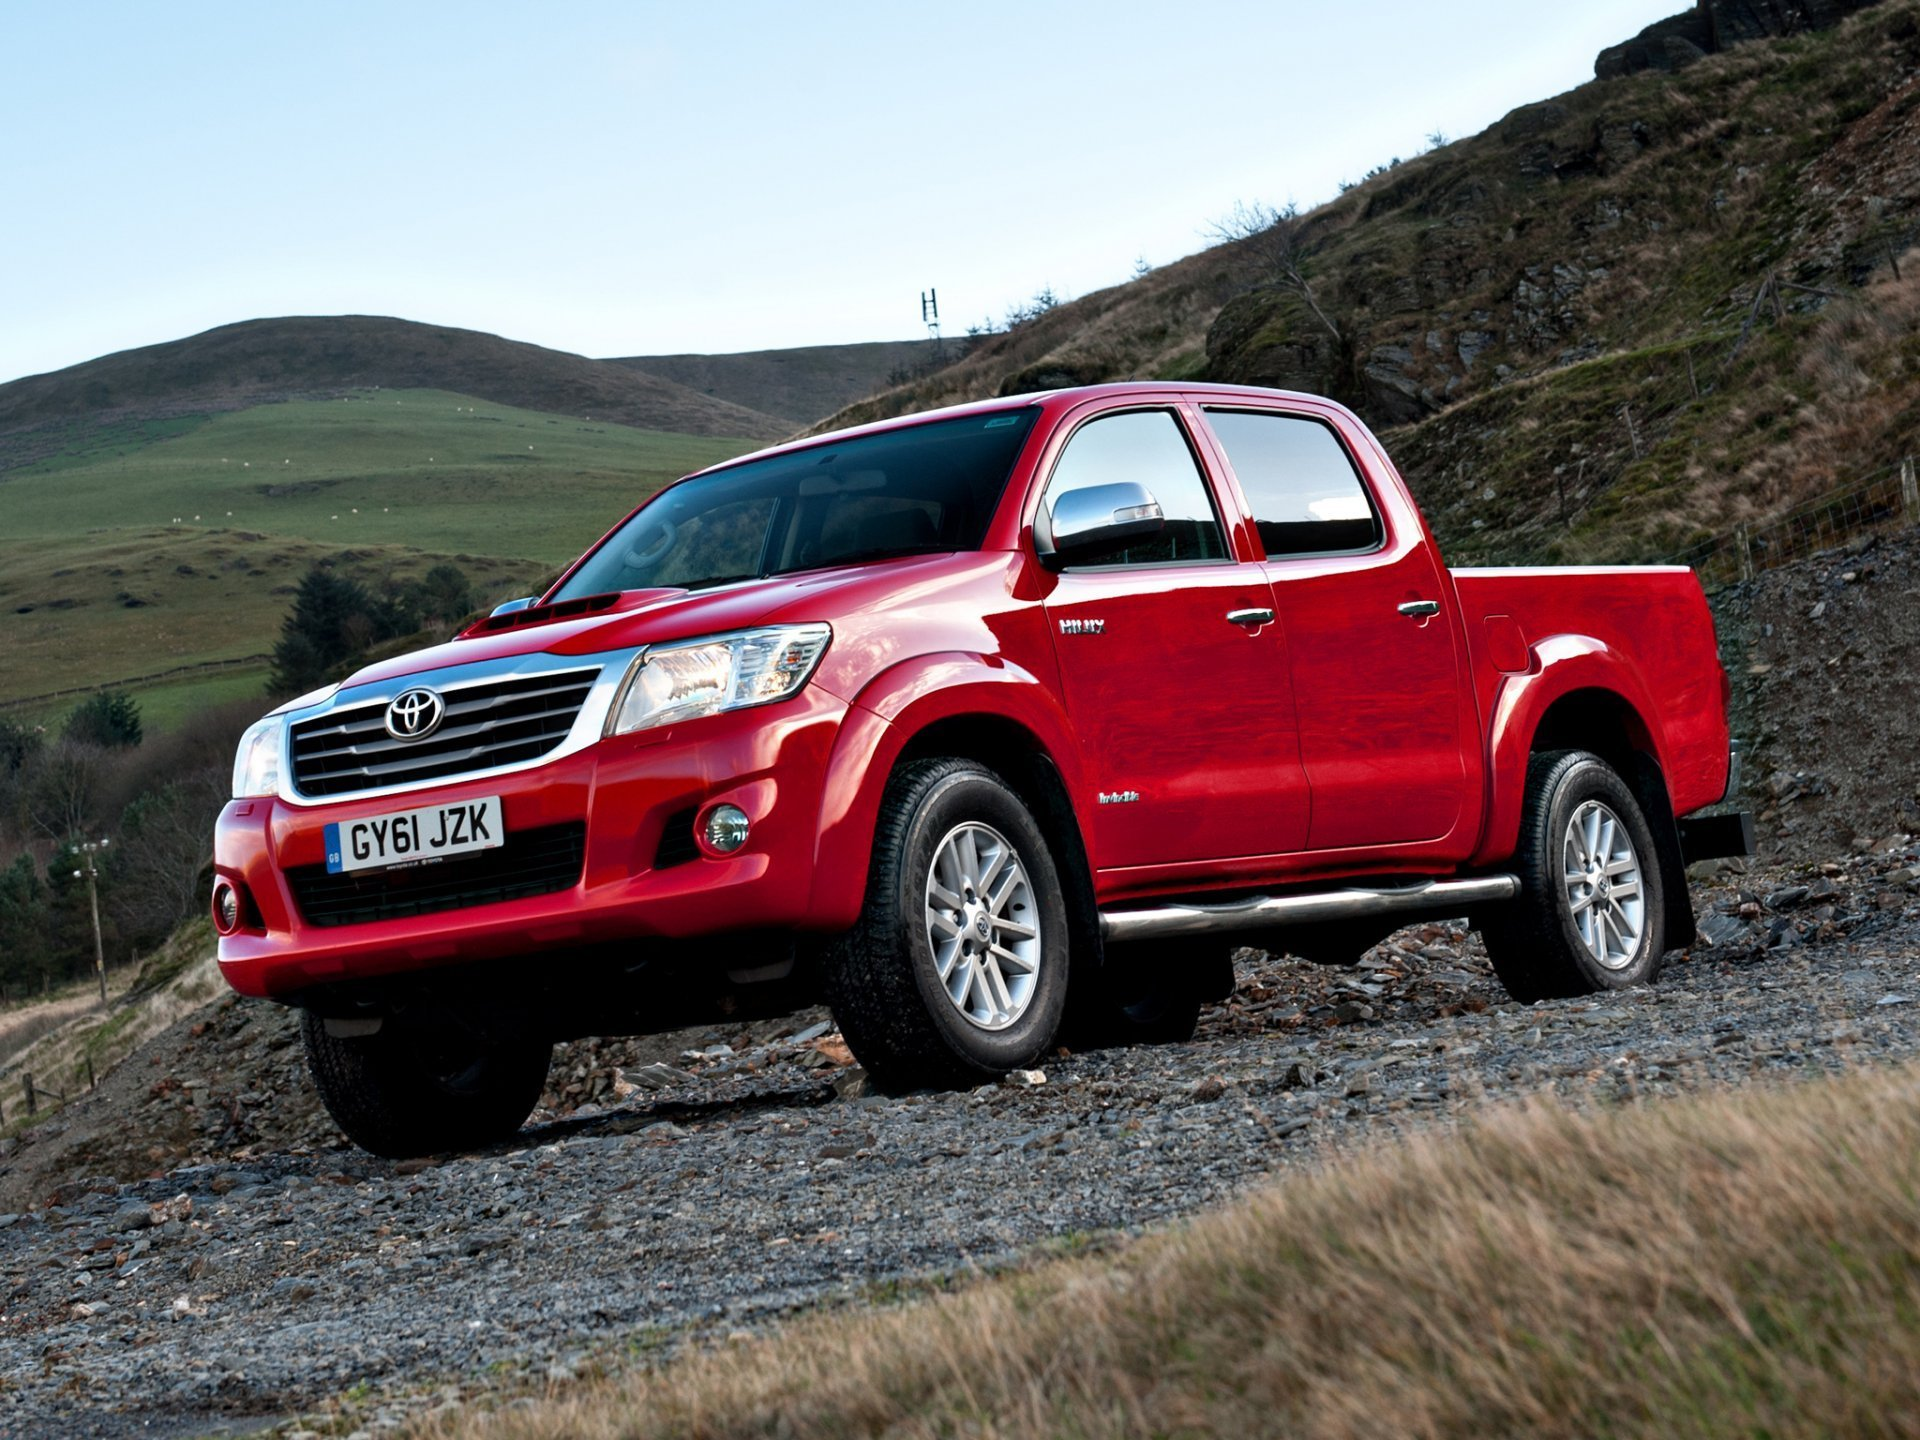 Toyota Hilux Double Cab Uk spec Picup Red Car Auto   Toyota Hilux 1920x1440